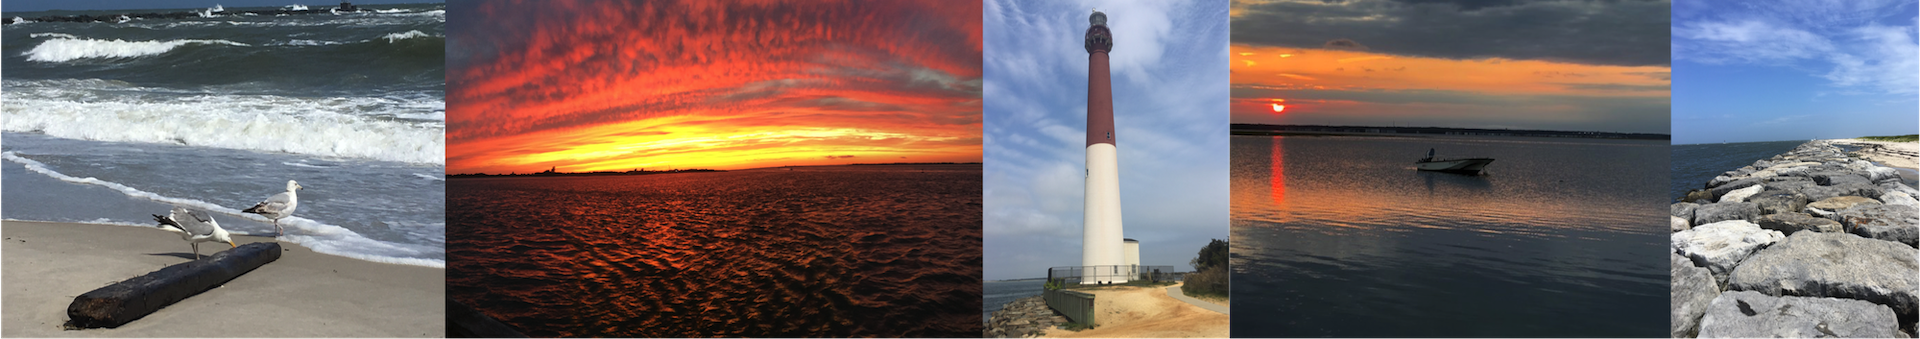 Barnegat Light Taxpayers' Association